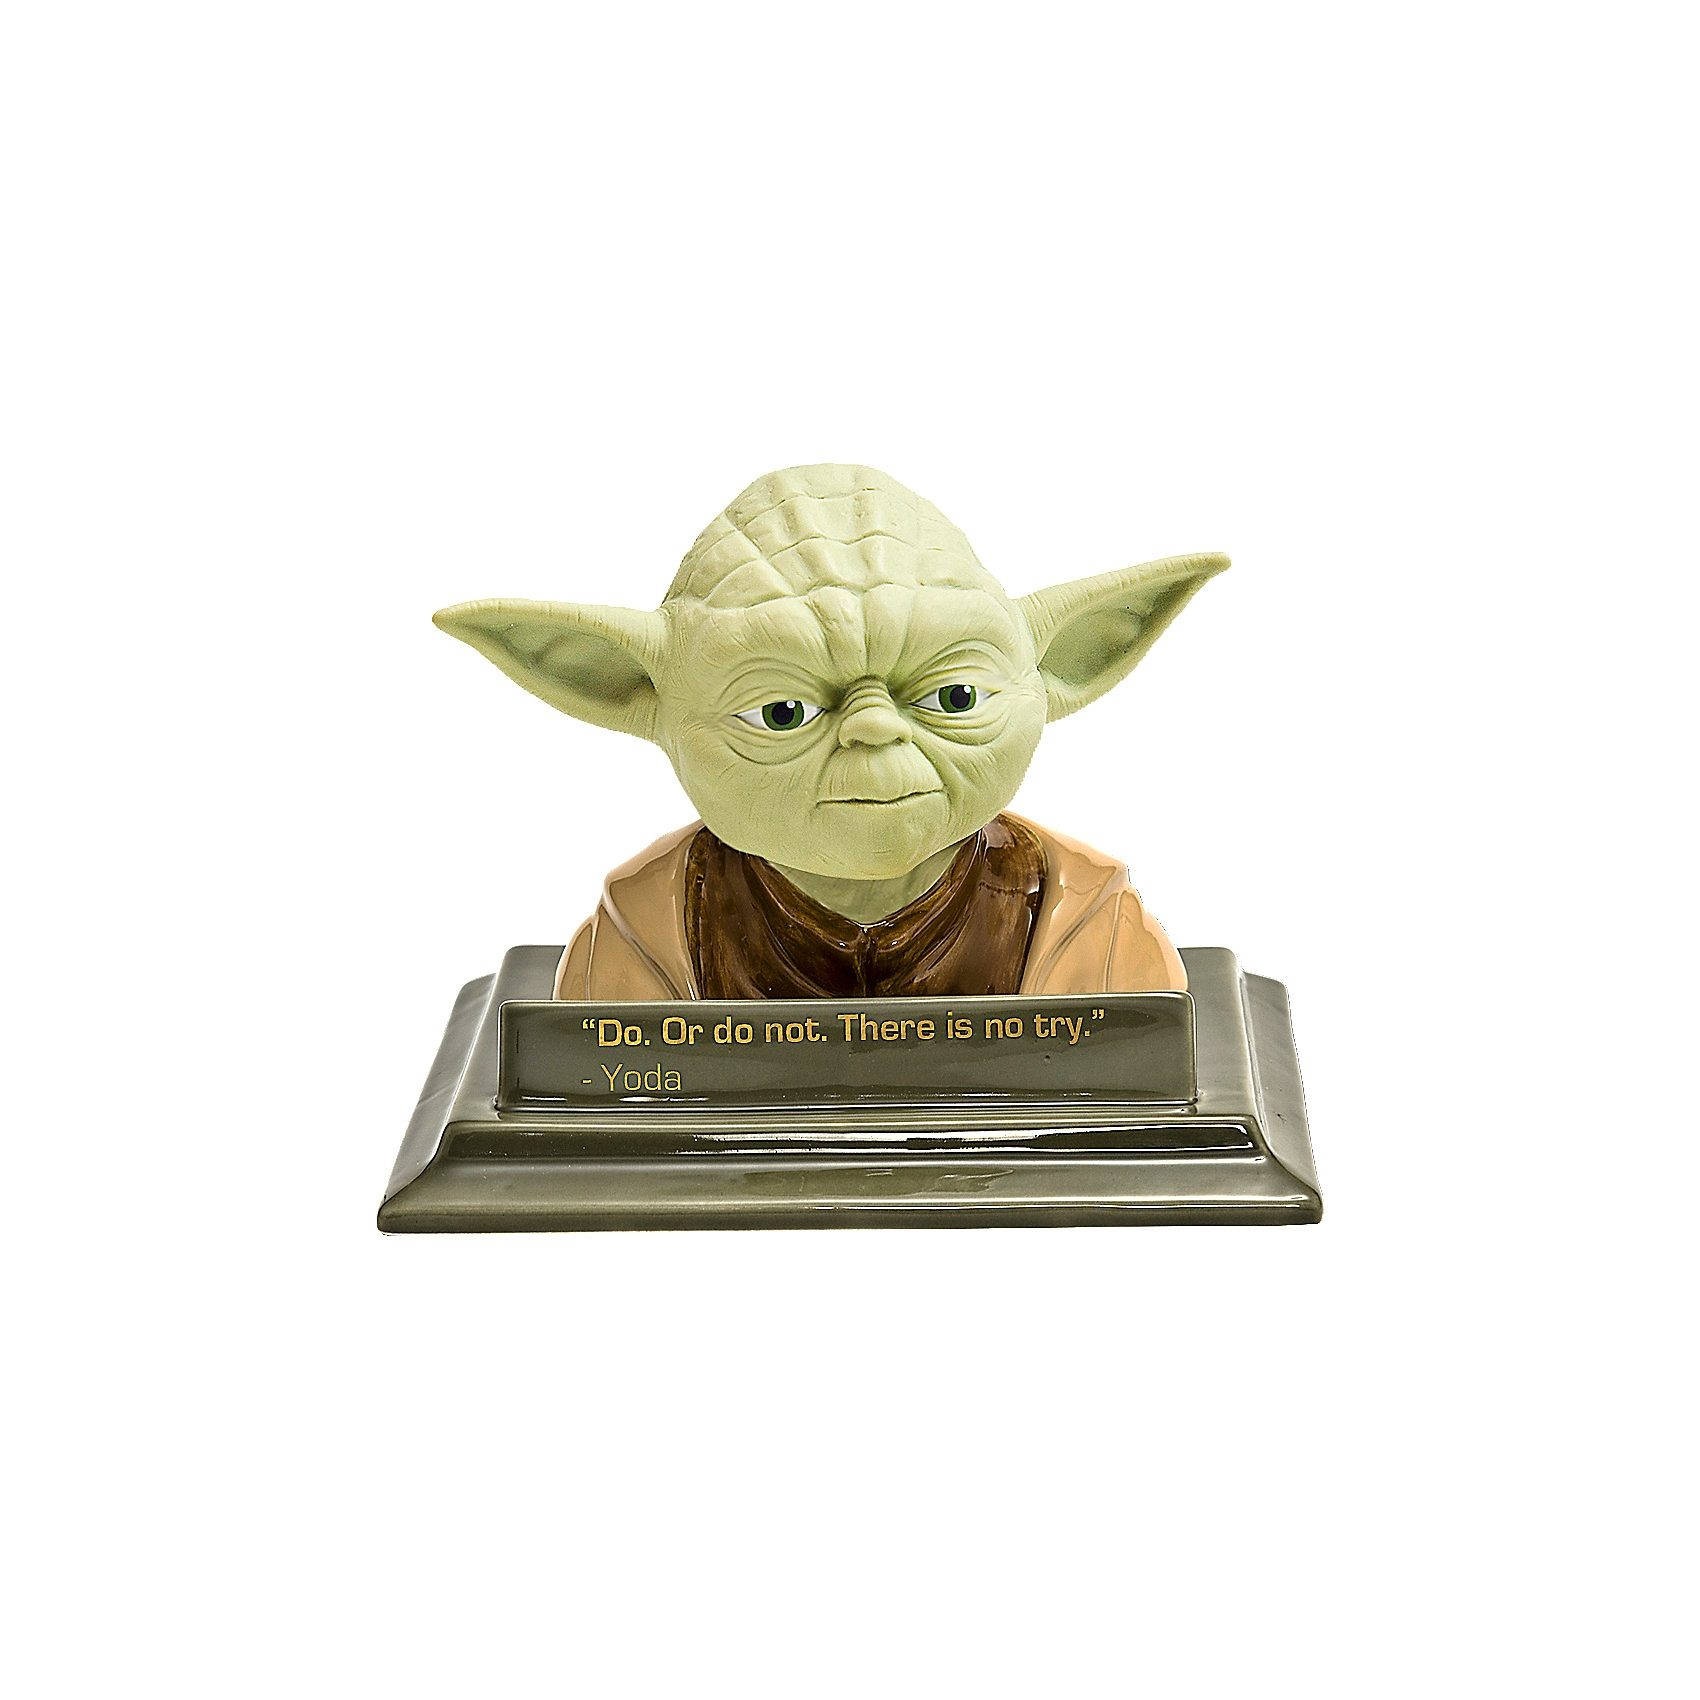 JOY TOY 3D-Büste Spardose Yoda Star Wars, Keramik